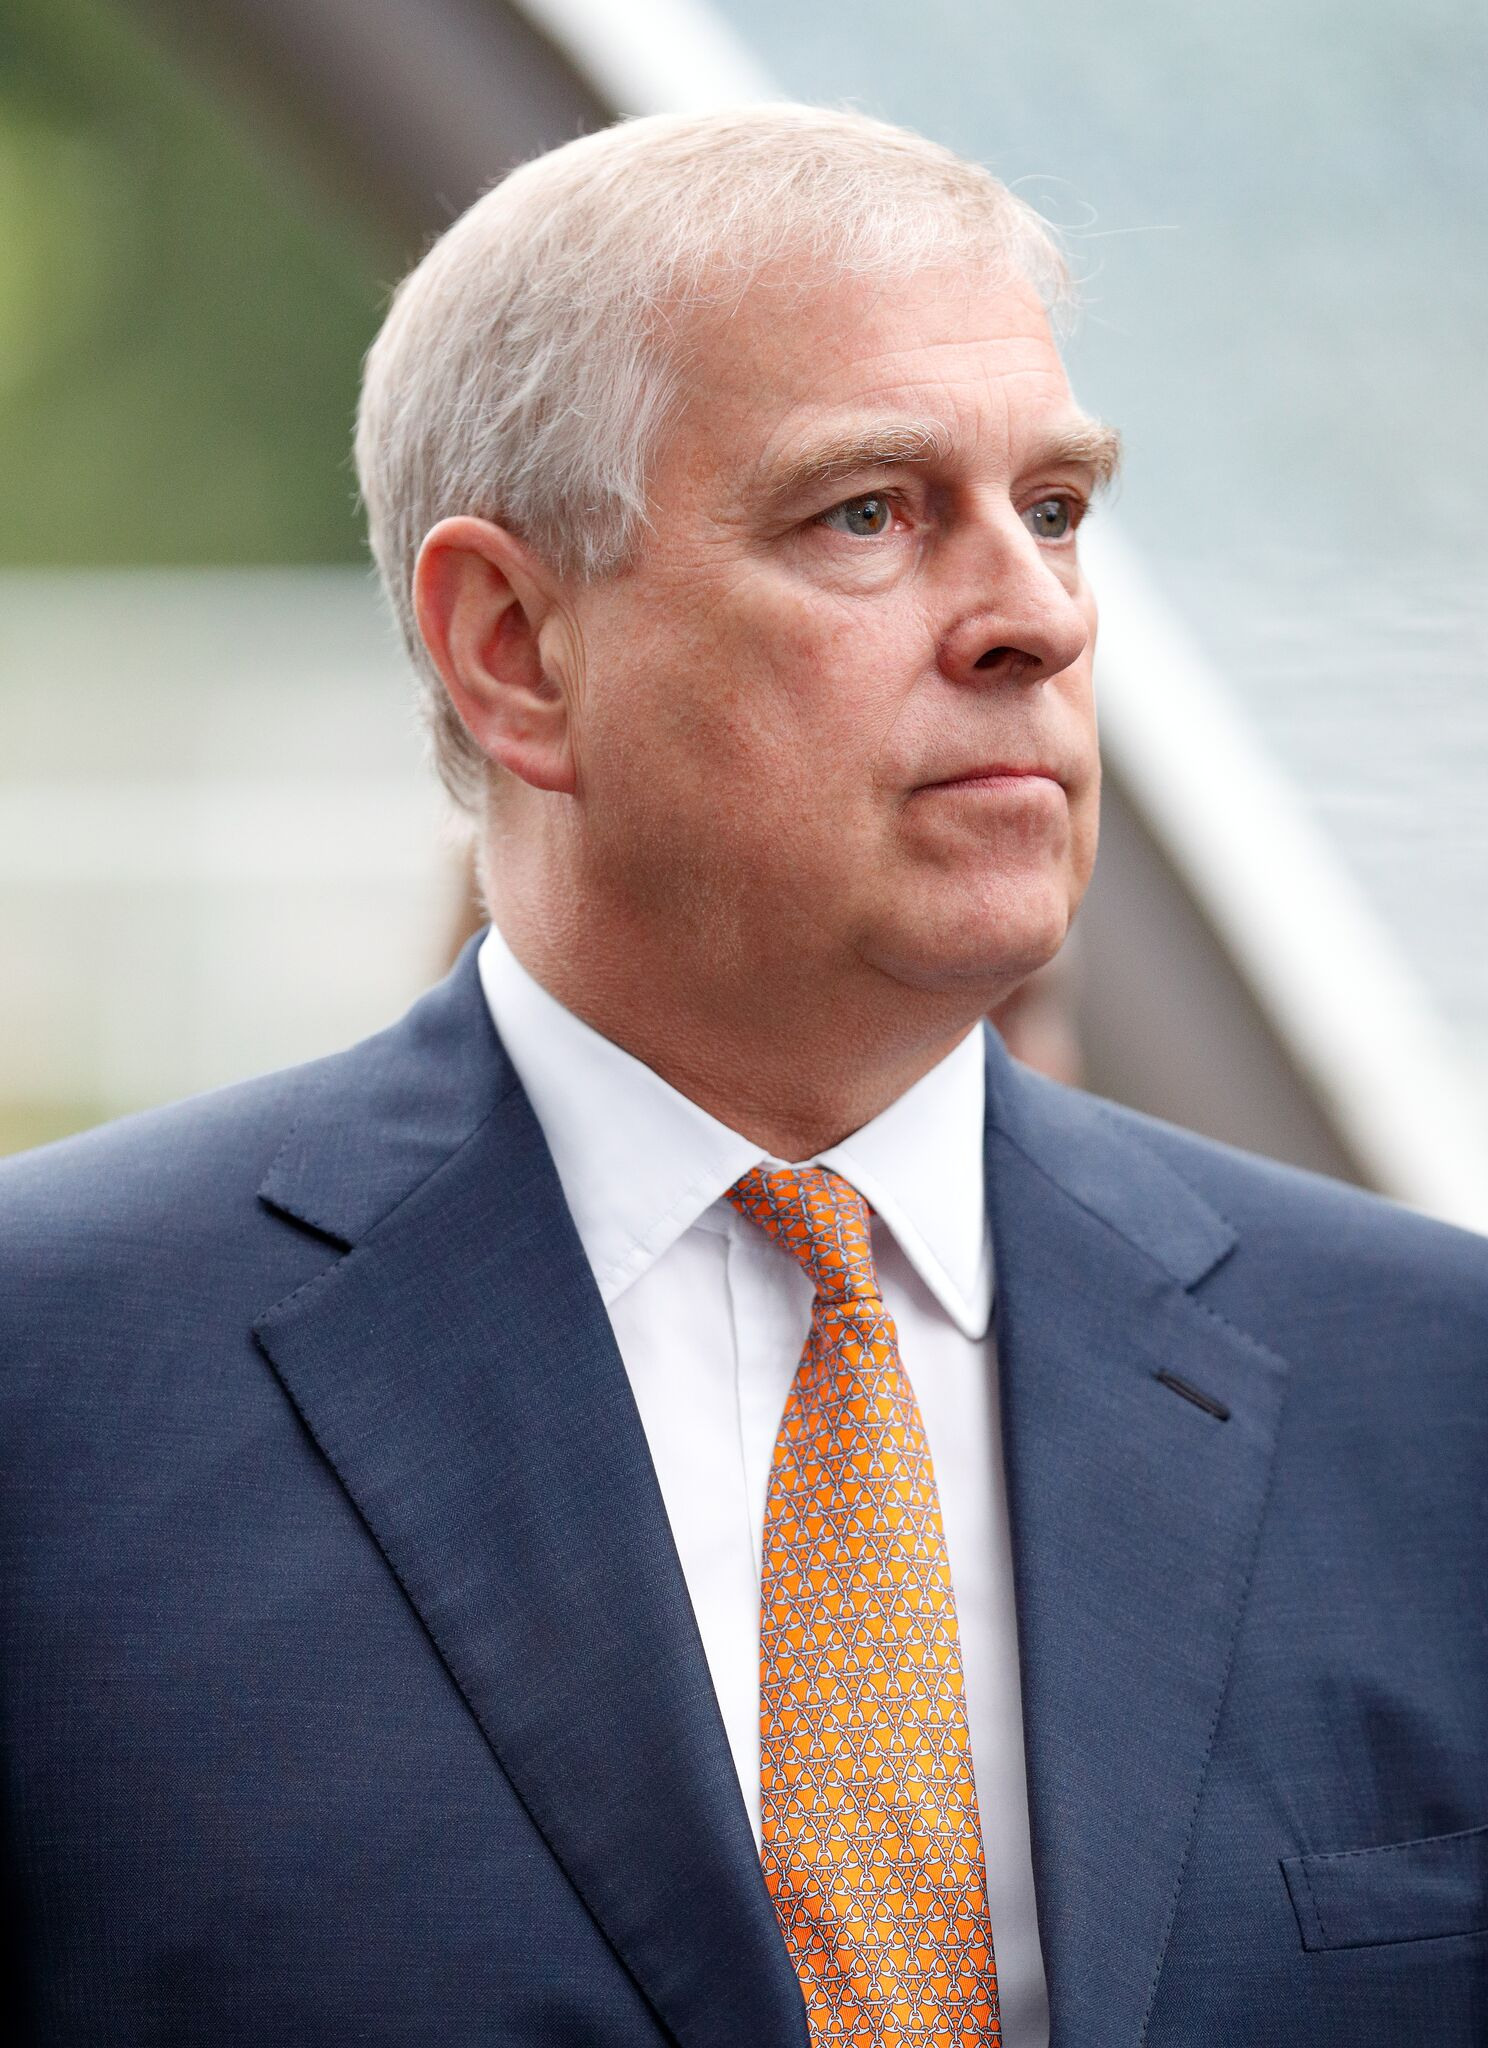 Prince Andrew, Duke of York attends the King George VI racing meet at Ascot Racecourse  | Getty Images